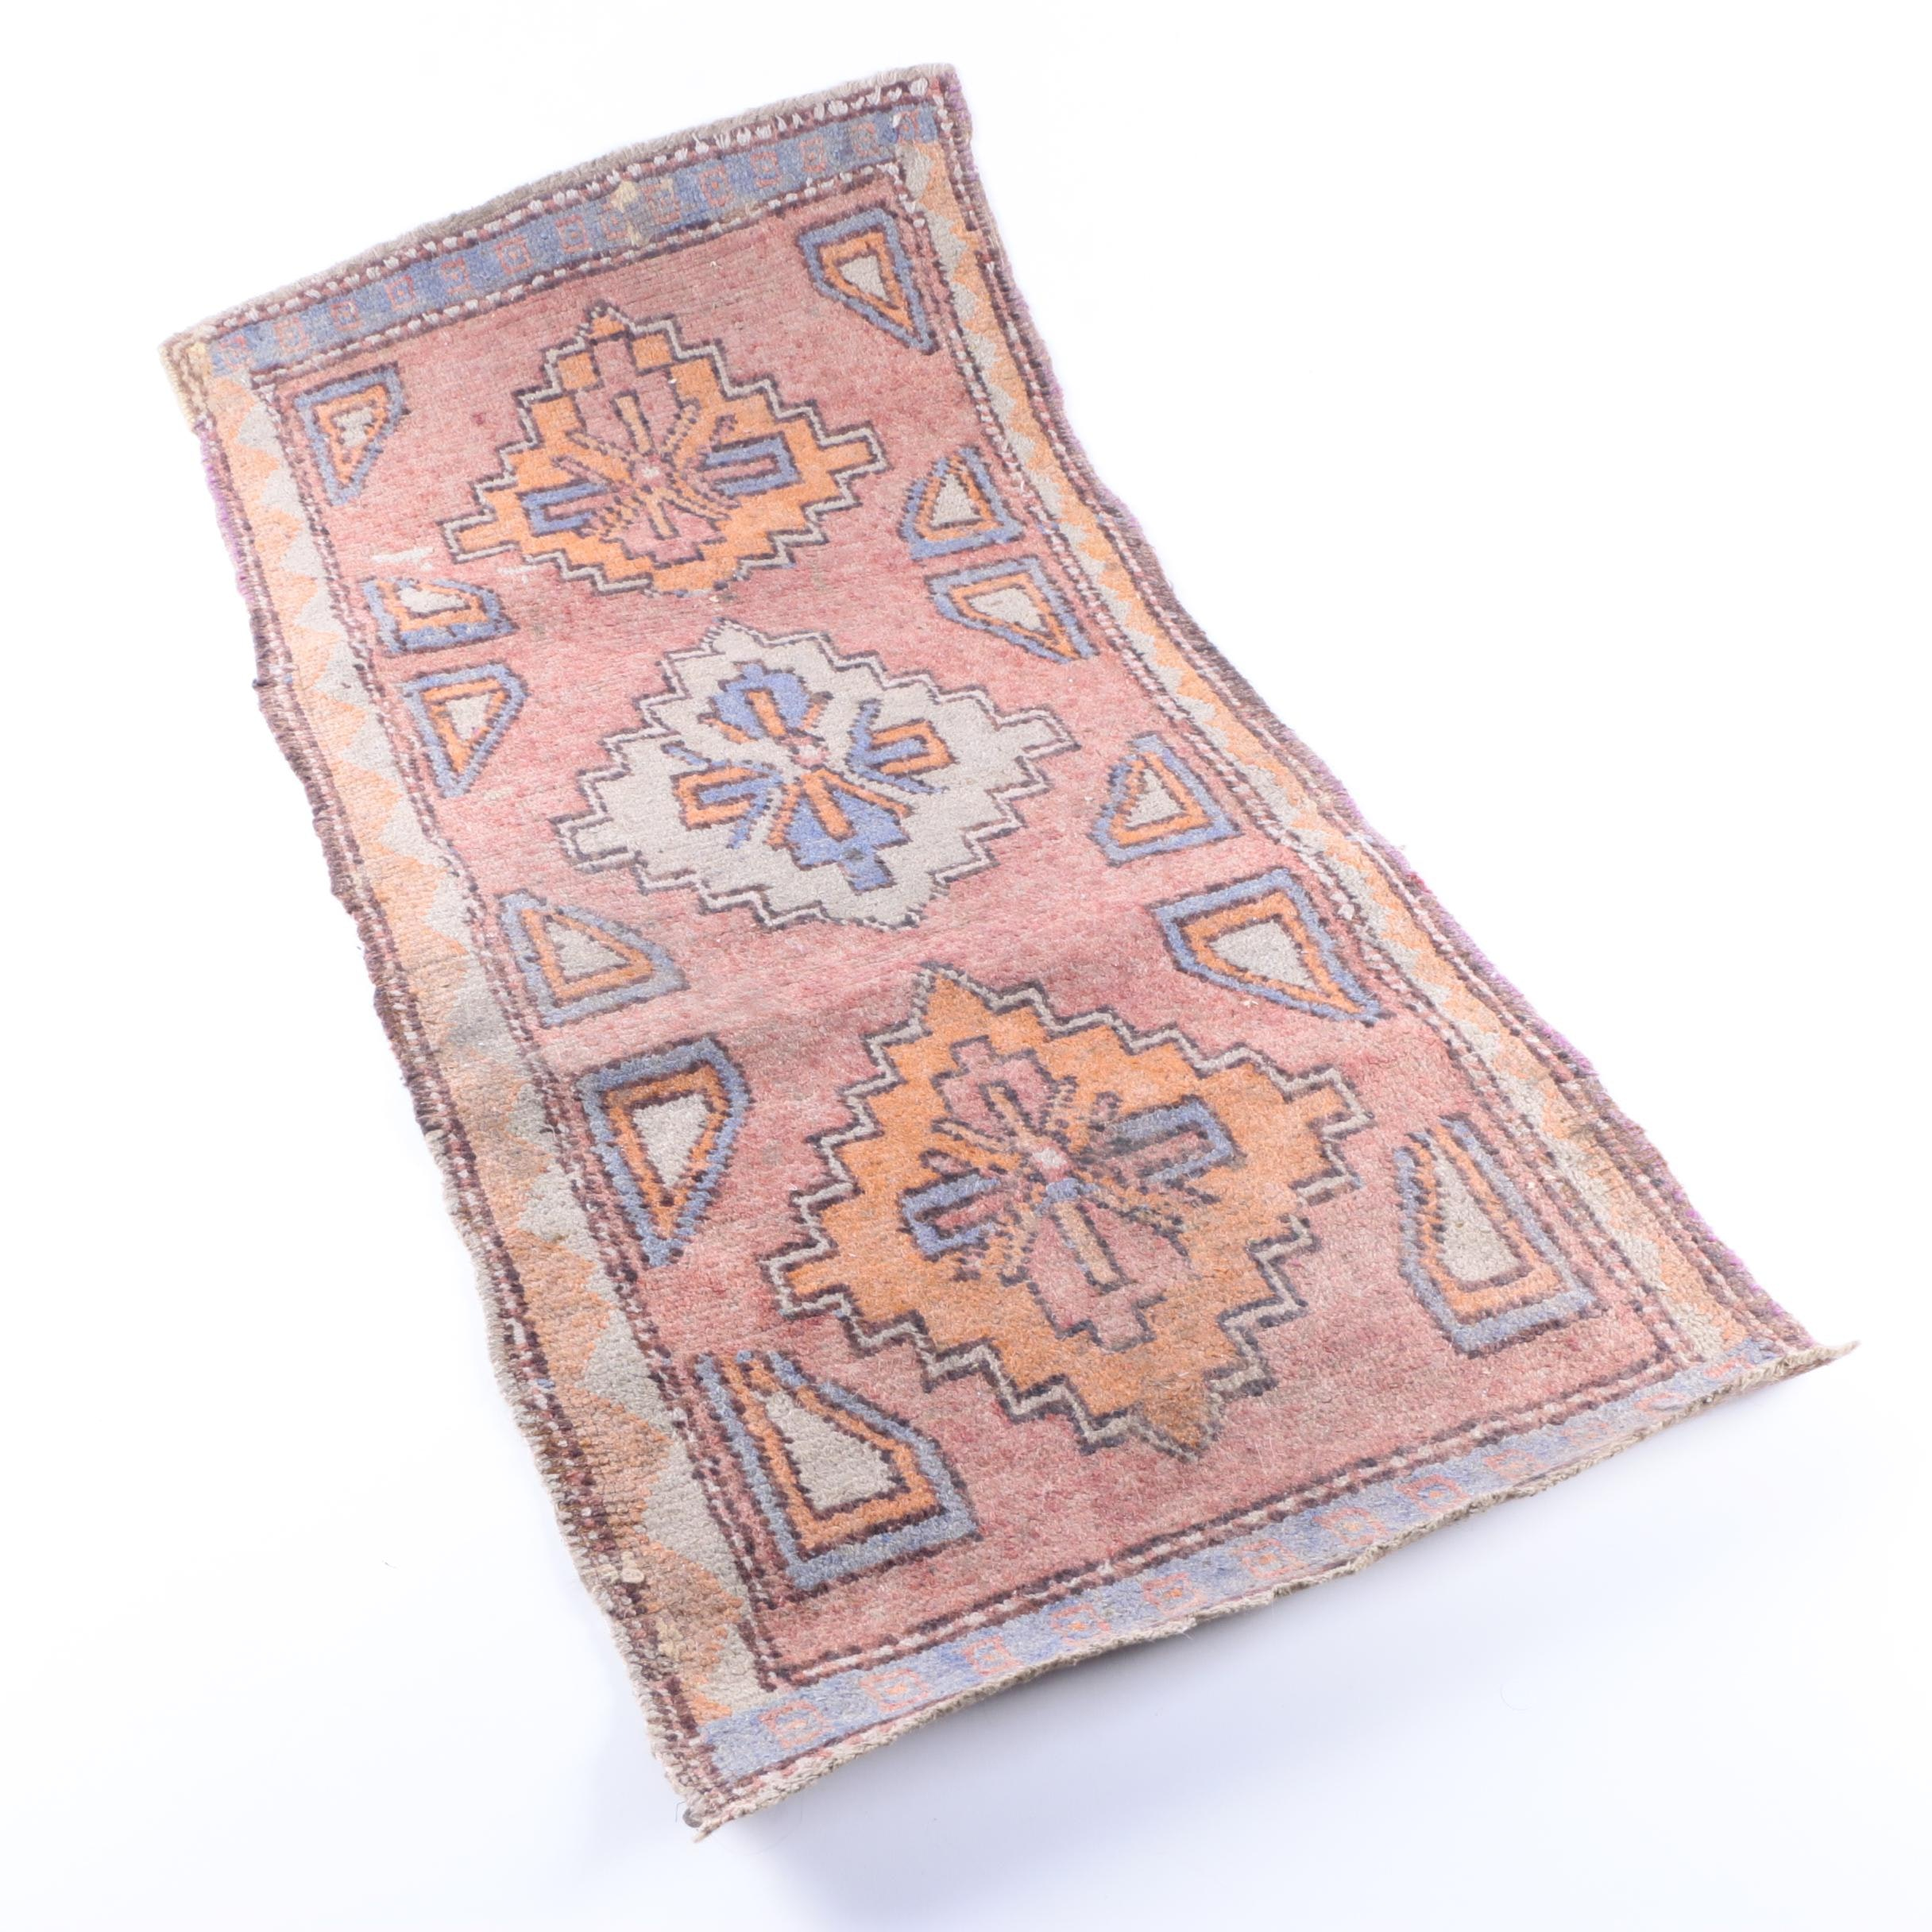 Hand-Knotted Tribal Style Wool Area Rug